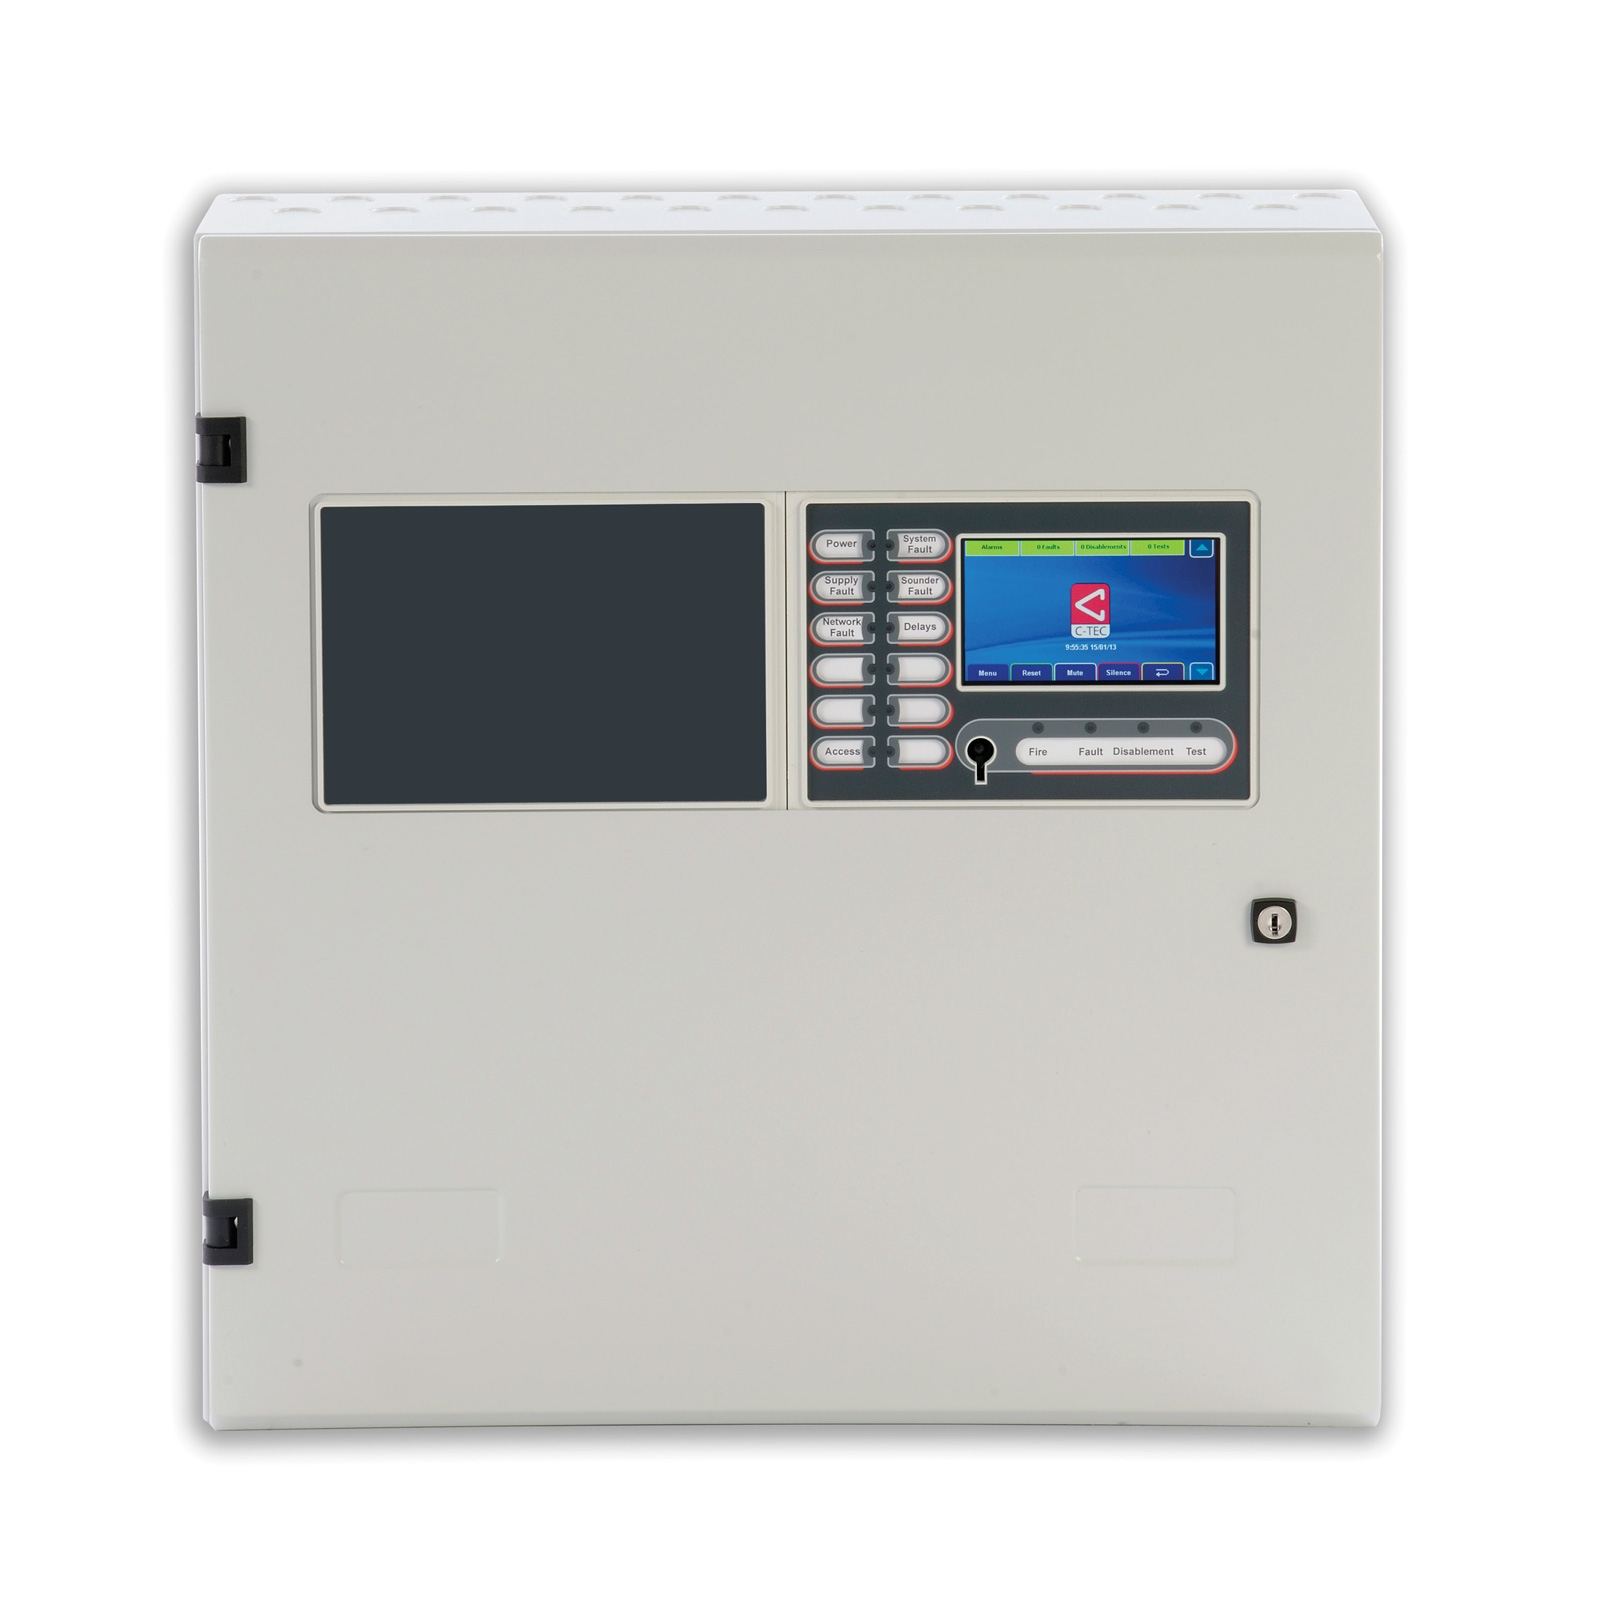 Addressable Fire Alarm Control Panel Wiring Diagram